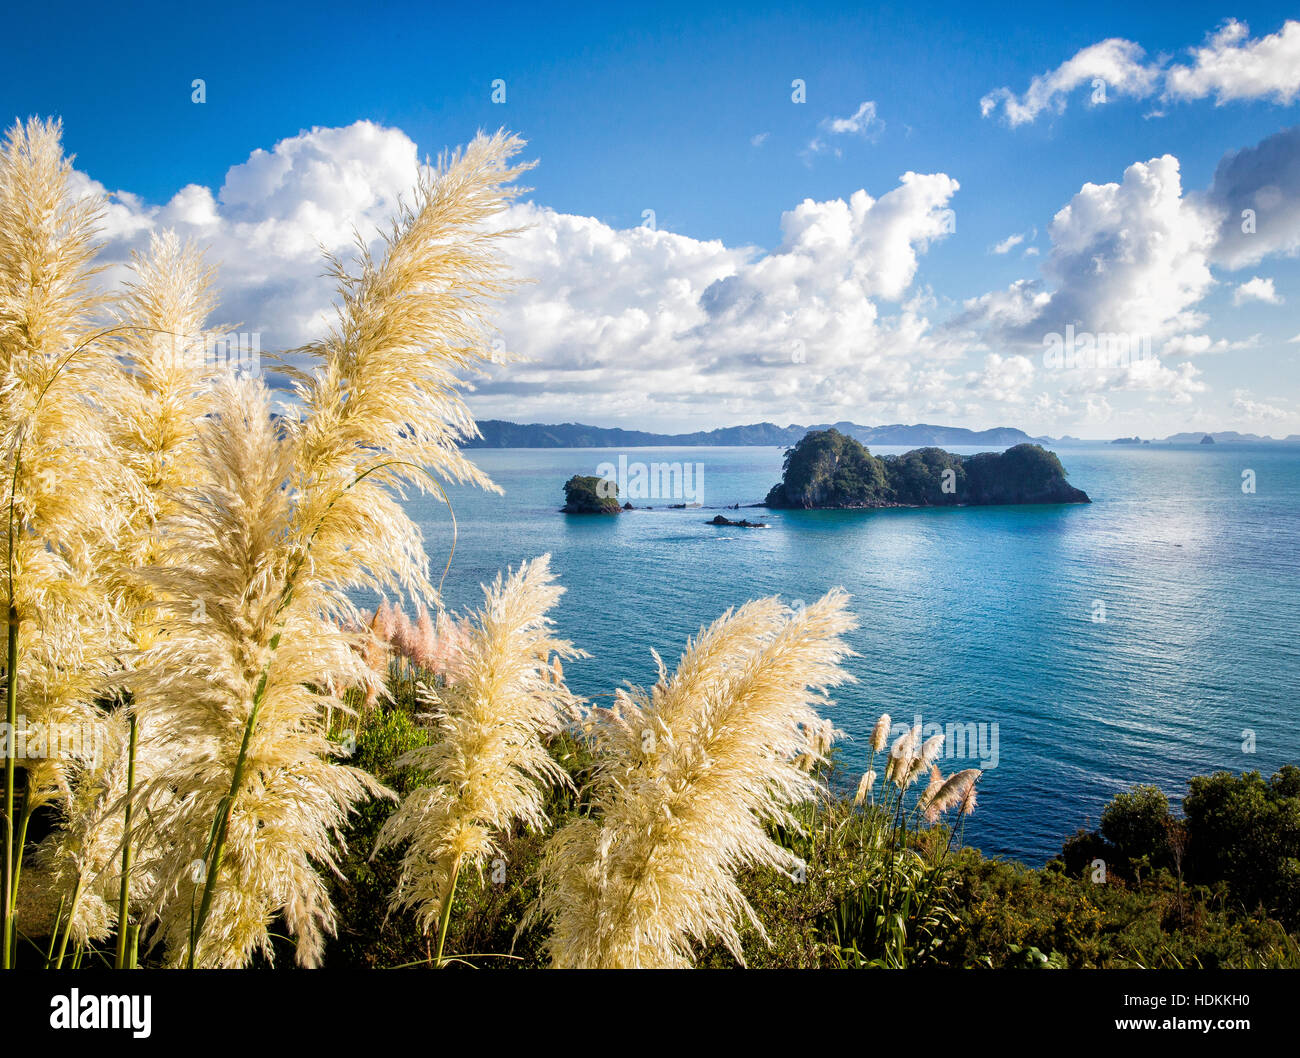 The Coromandel coast of North Island New Zealand near Hahei and Cathedral Cove - Stock Image